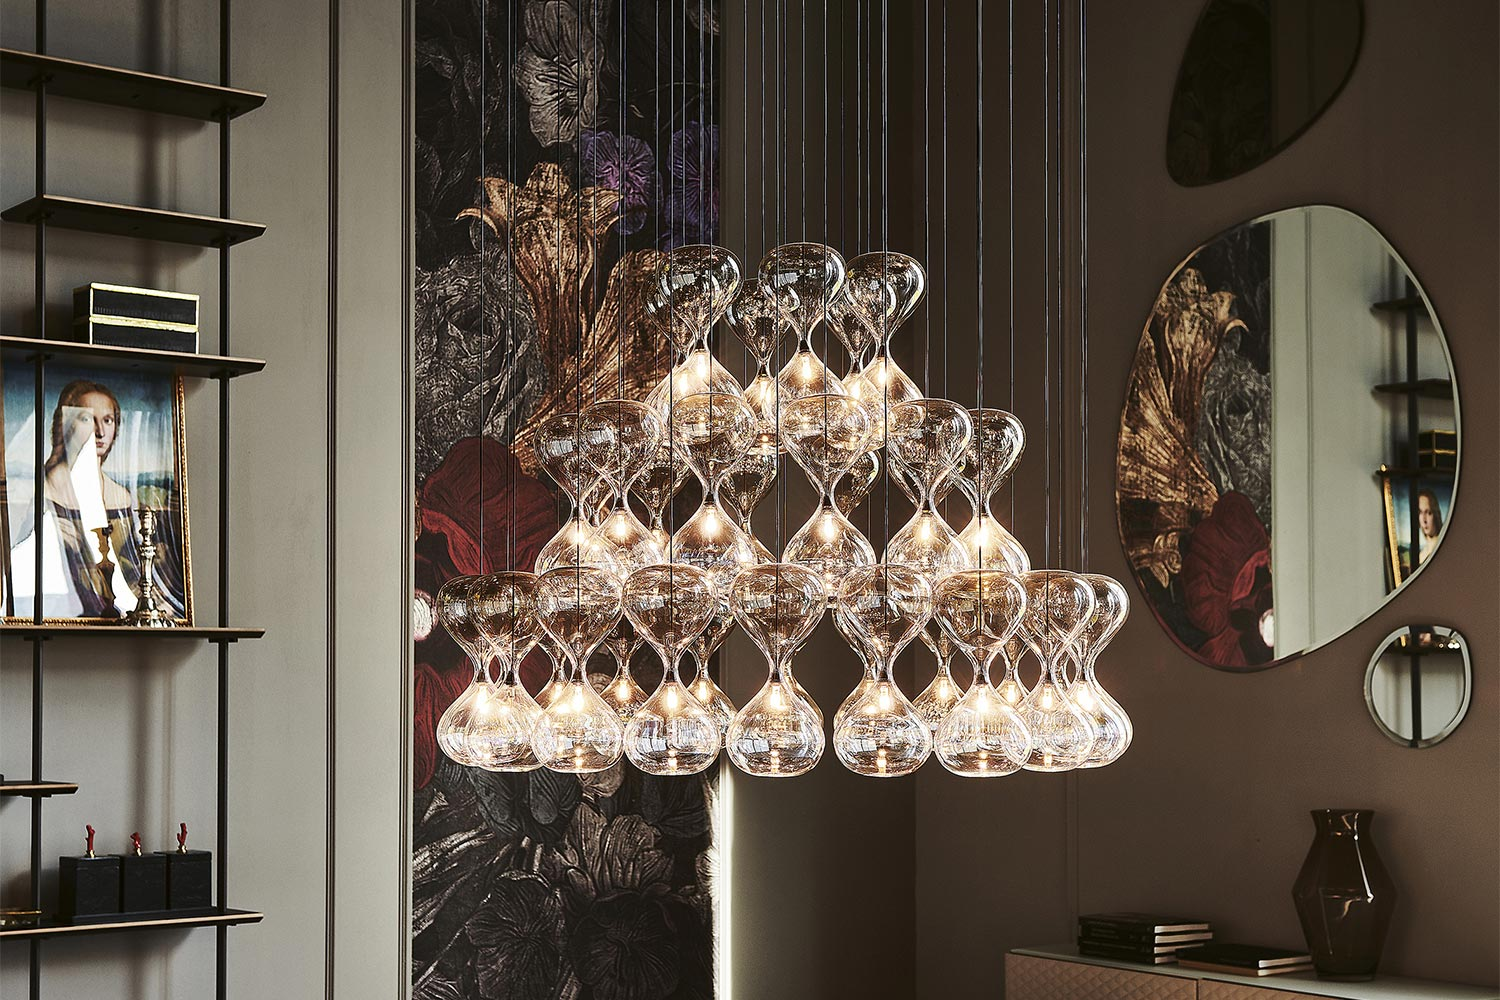 Stunning Light Fixtures to Prepare for Shorter Days